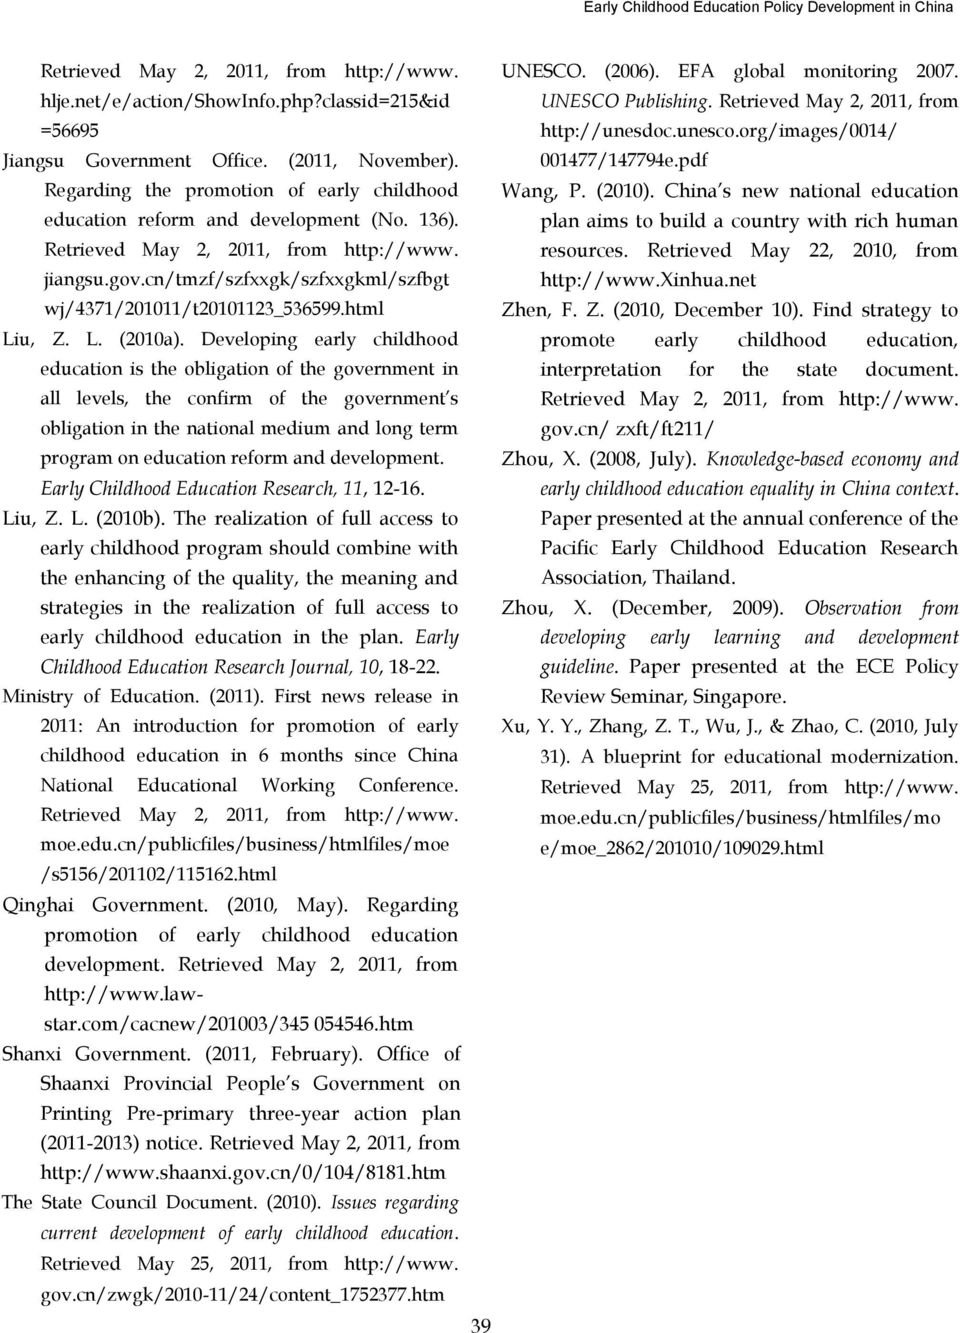 pdf Regarding the promotion of early childhood education reform and development (No. 136). Retrieved May 2, 2011, from http://www. jiangsu.gov.